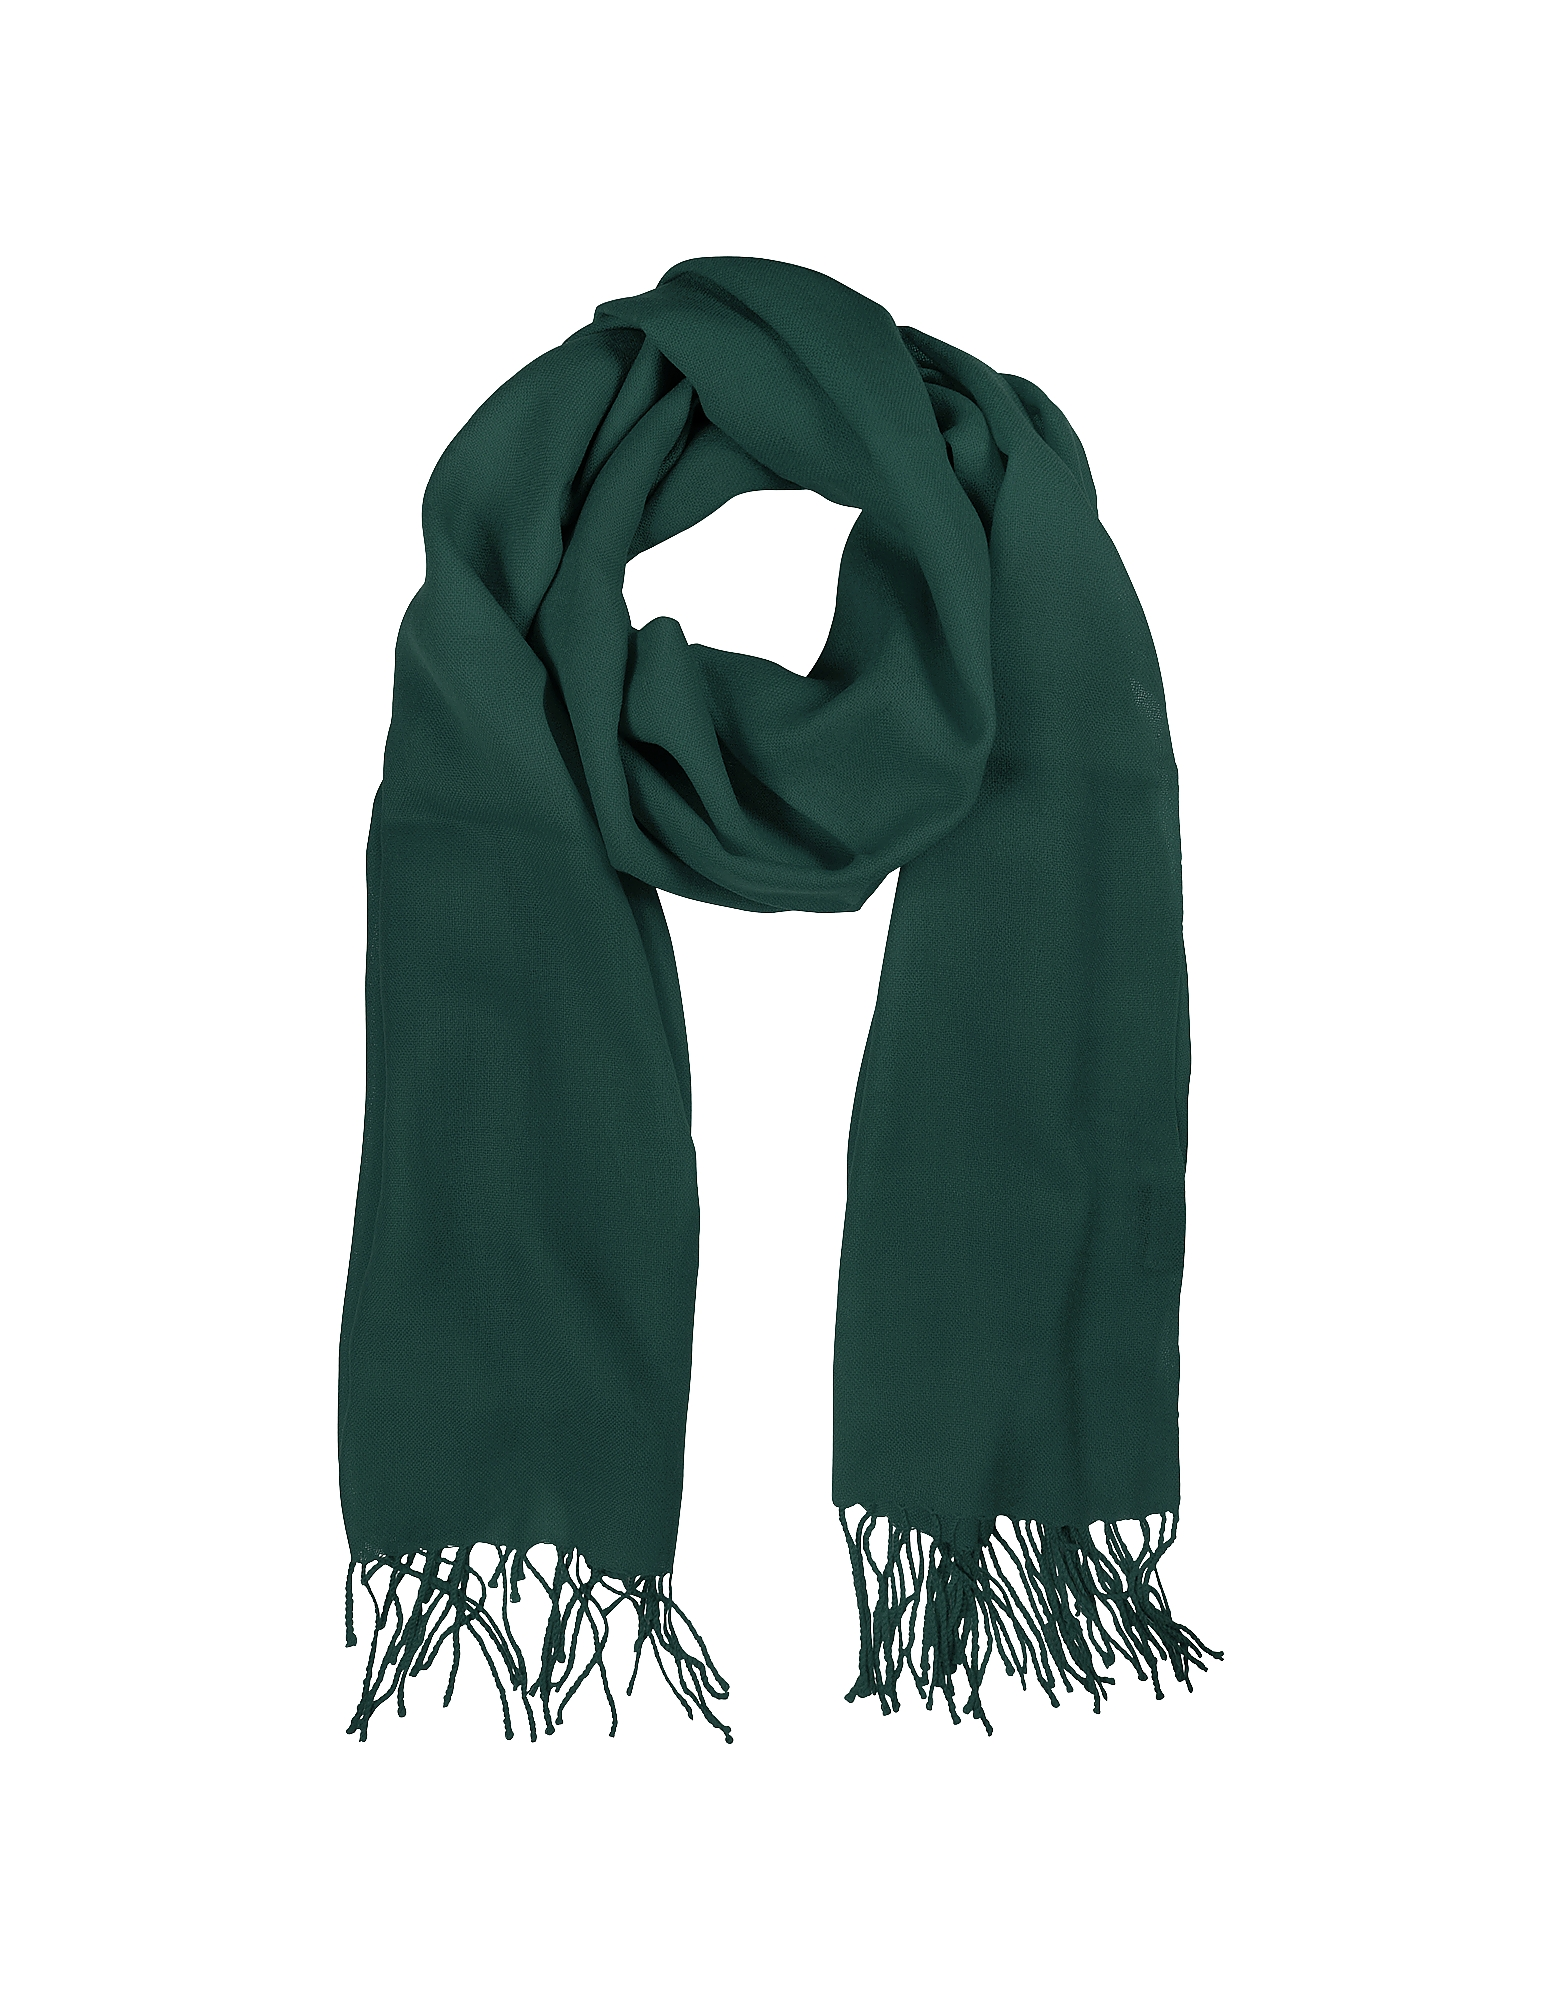 Mila Schon Long Scarves, Petrol Green Wool and Cashmere Stole